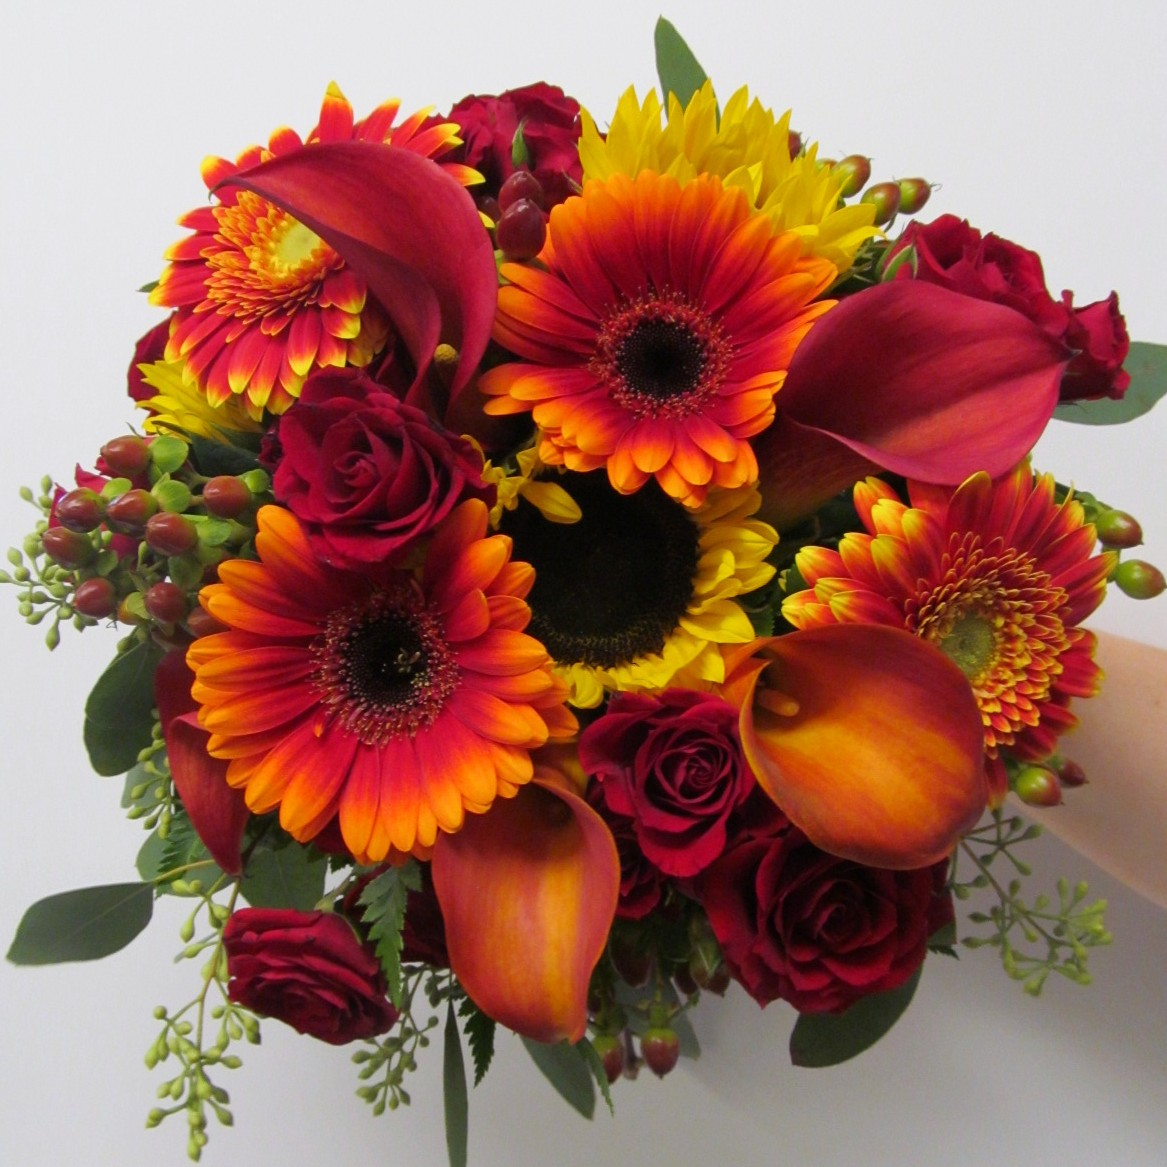 Fall wedding flowers at brookfield country club in